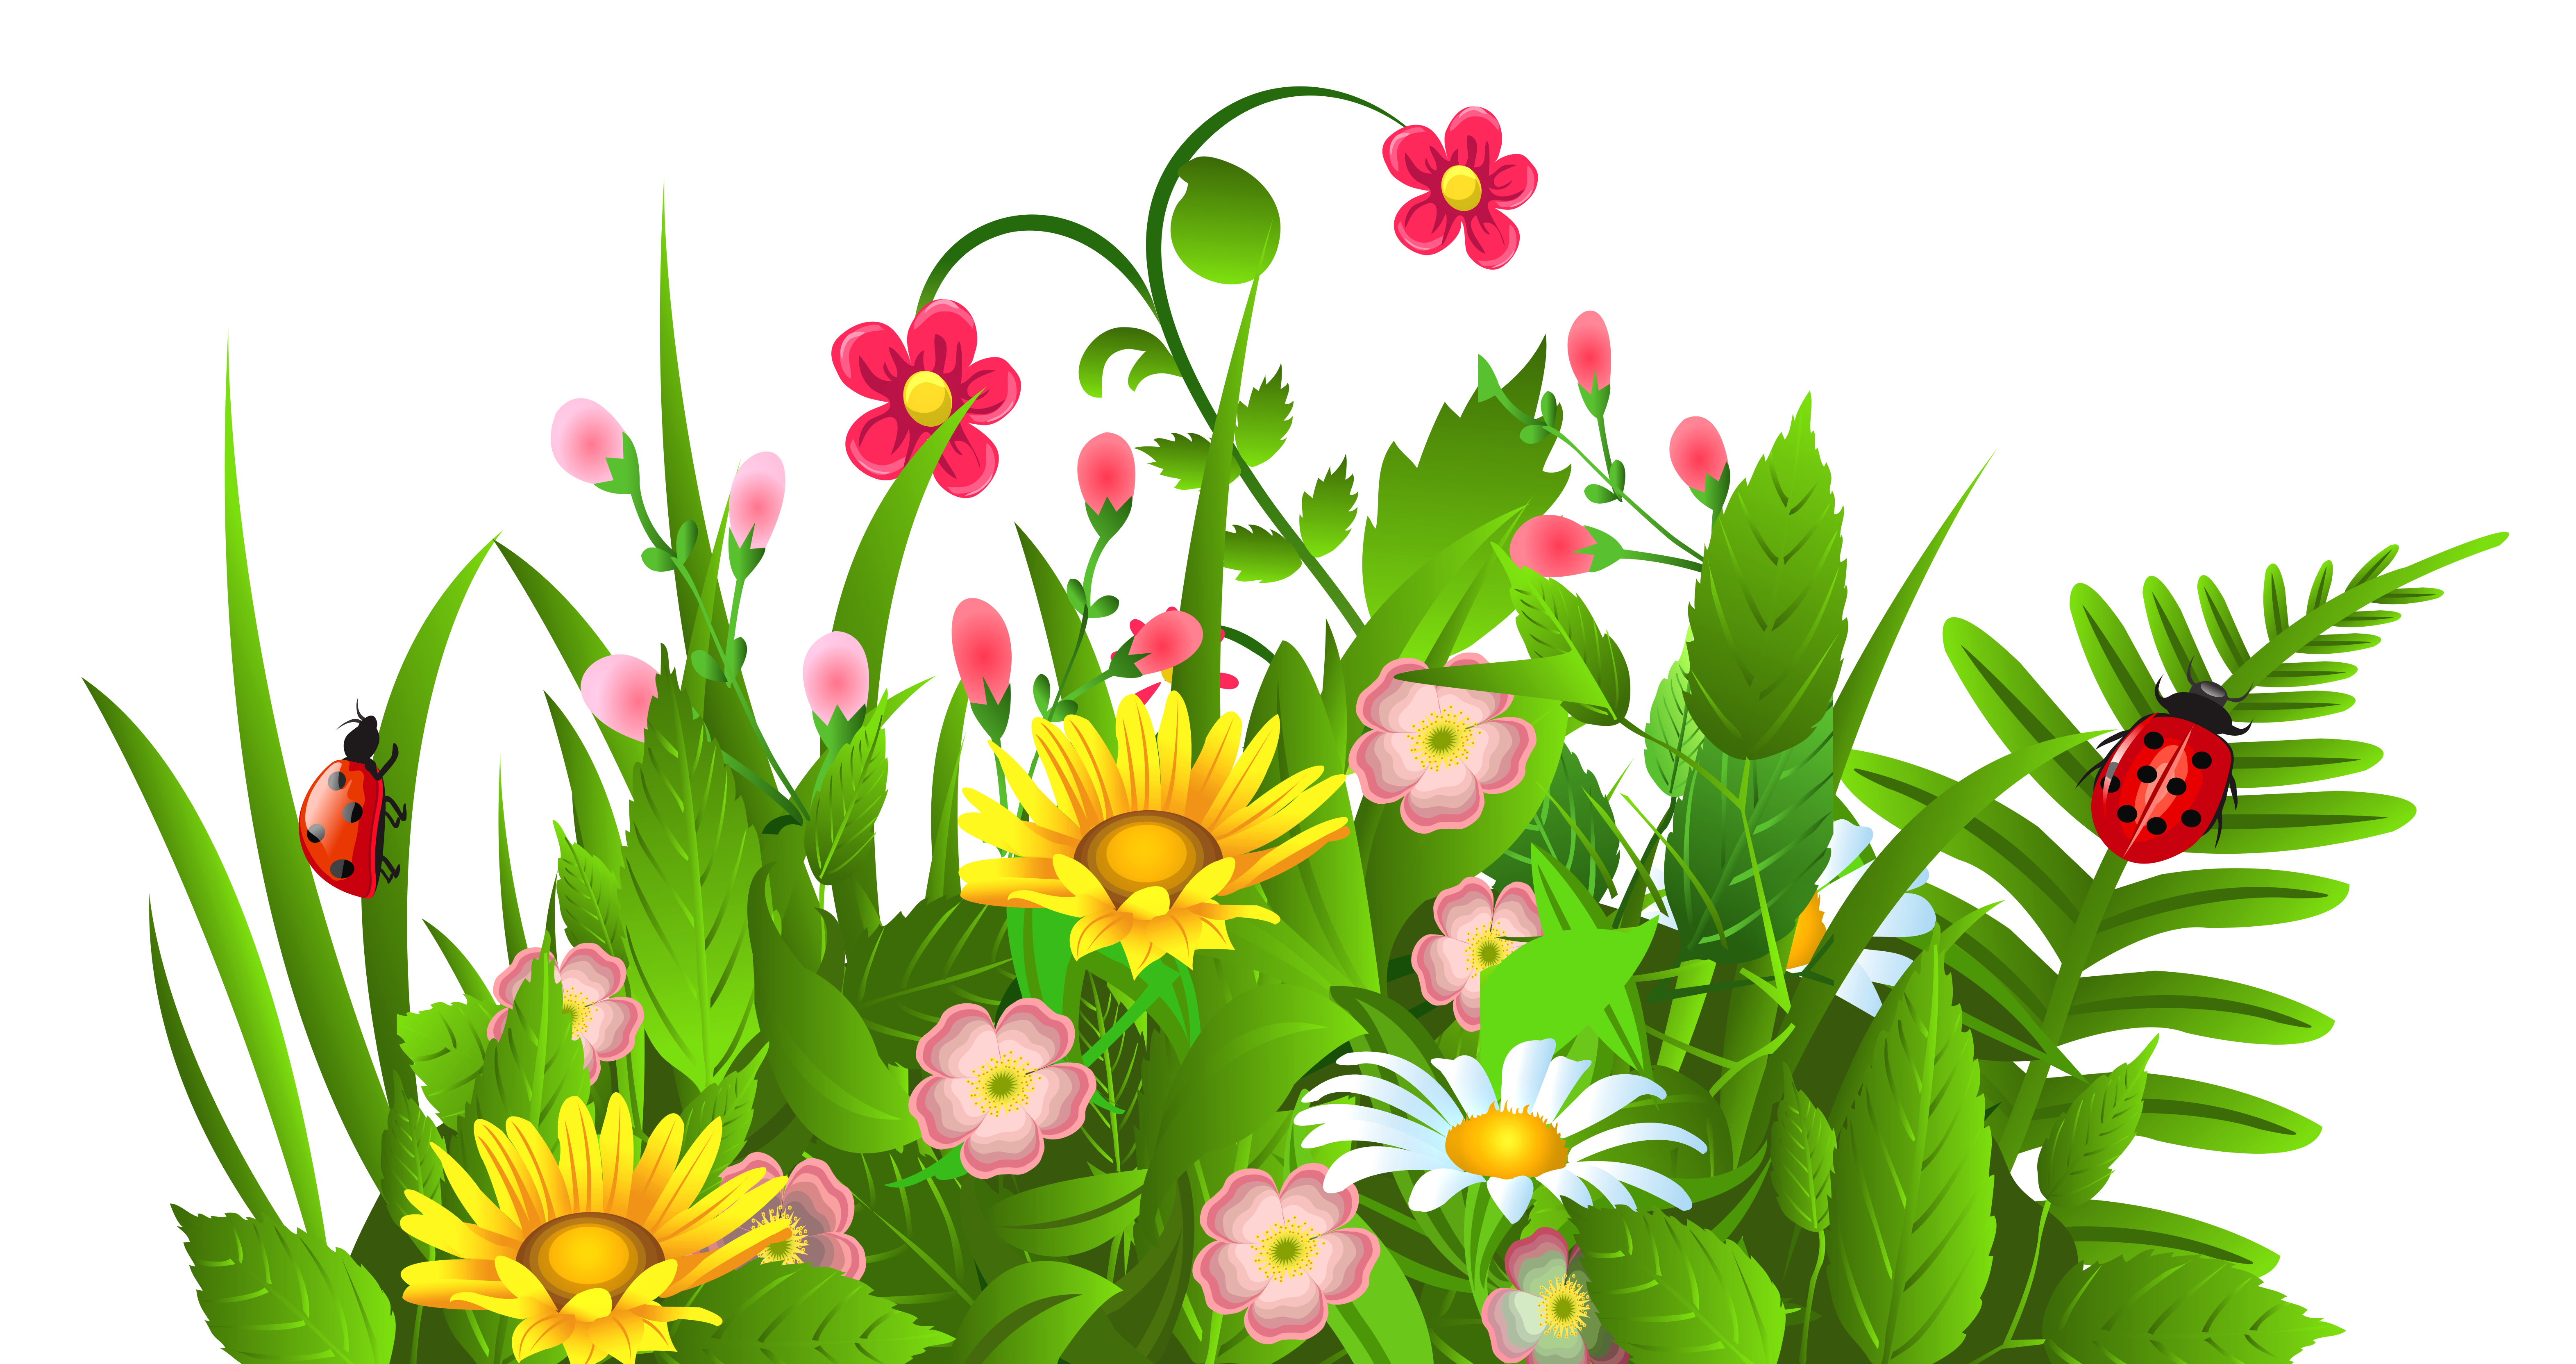 hight resolution of free clipart images of flowers flower clip art pictures image 1